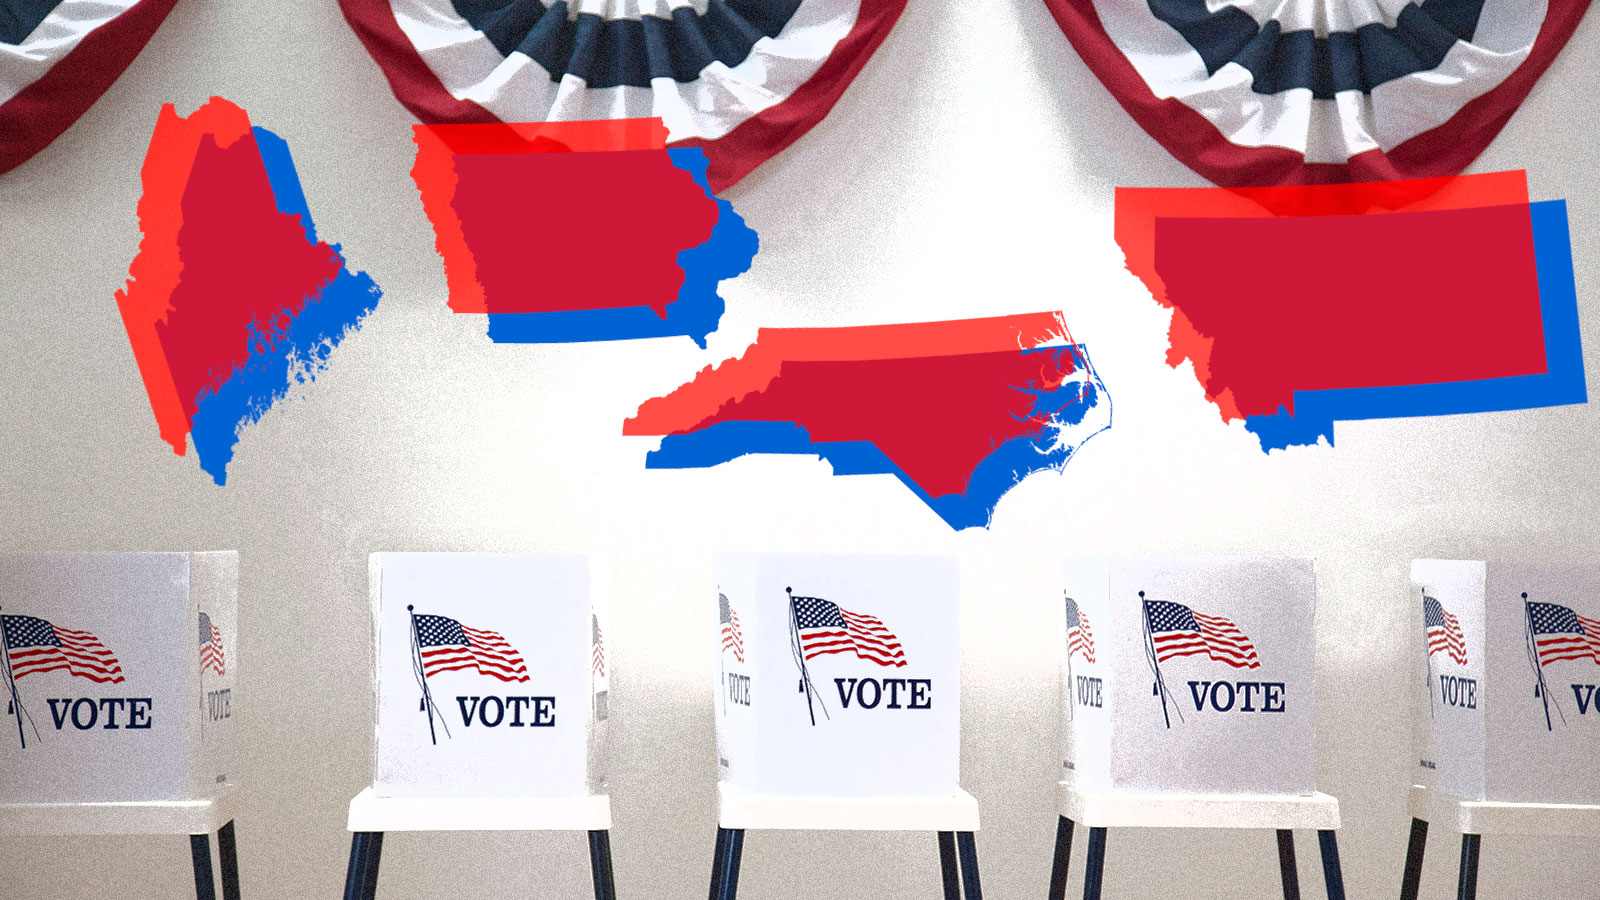 Four swing states against a backdrop of voting booths.